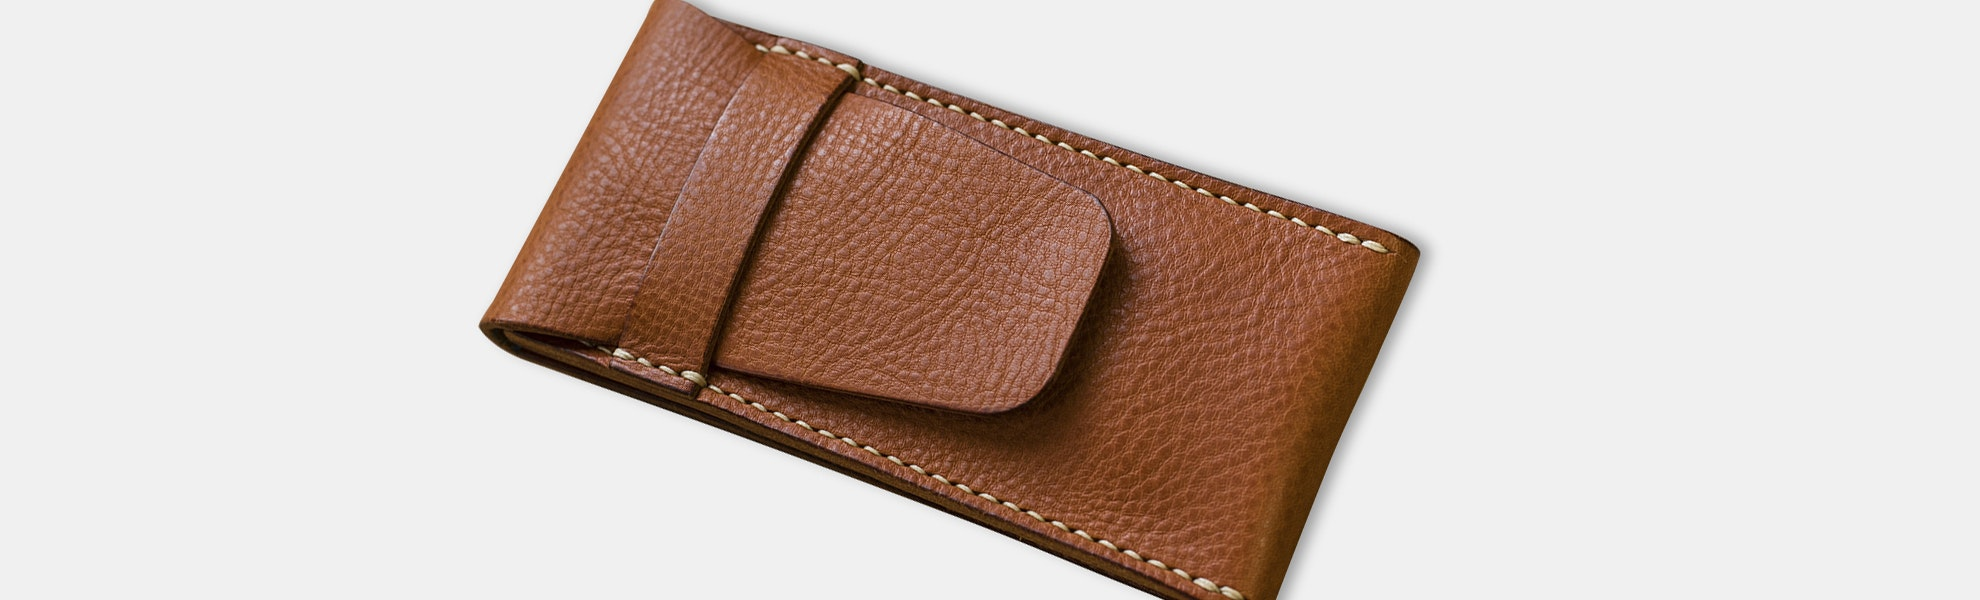 Eternal Leather Vegetable-Tanned Watch Pouch